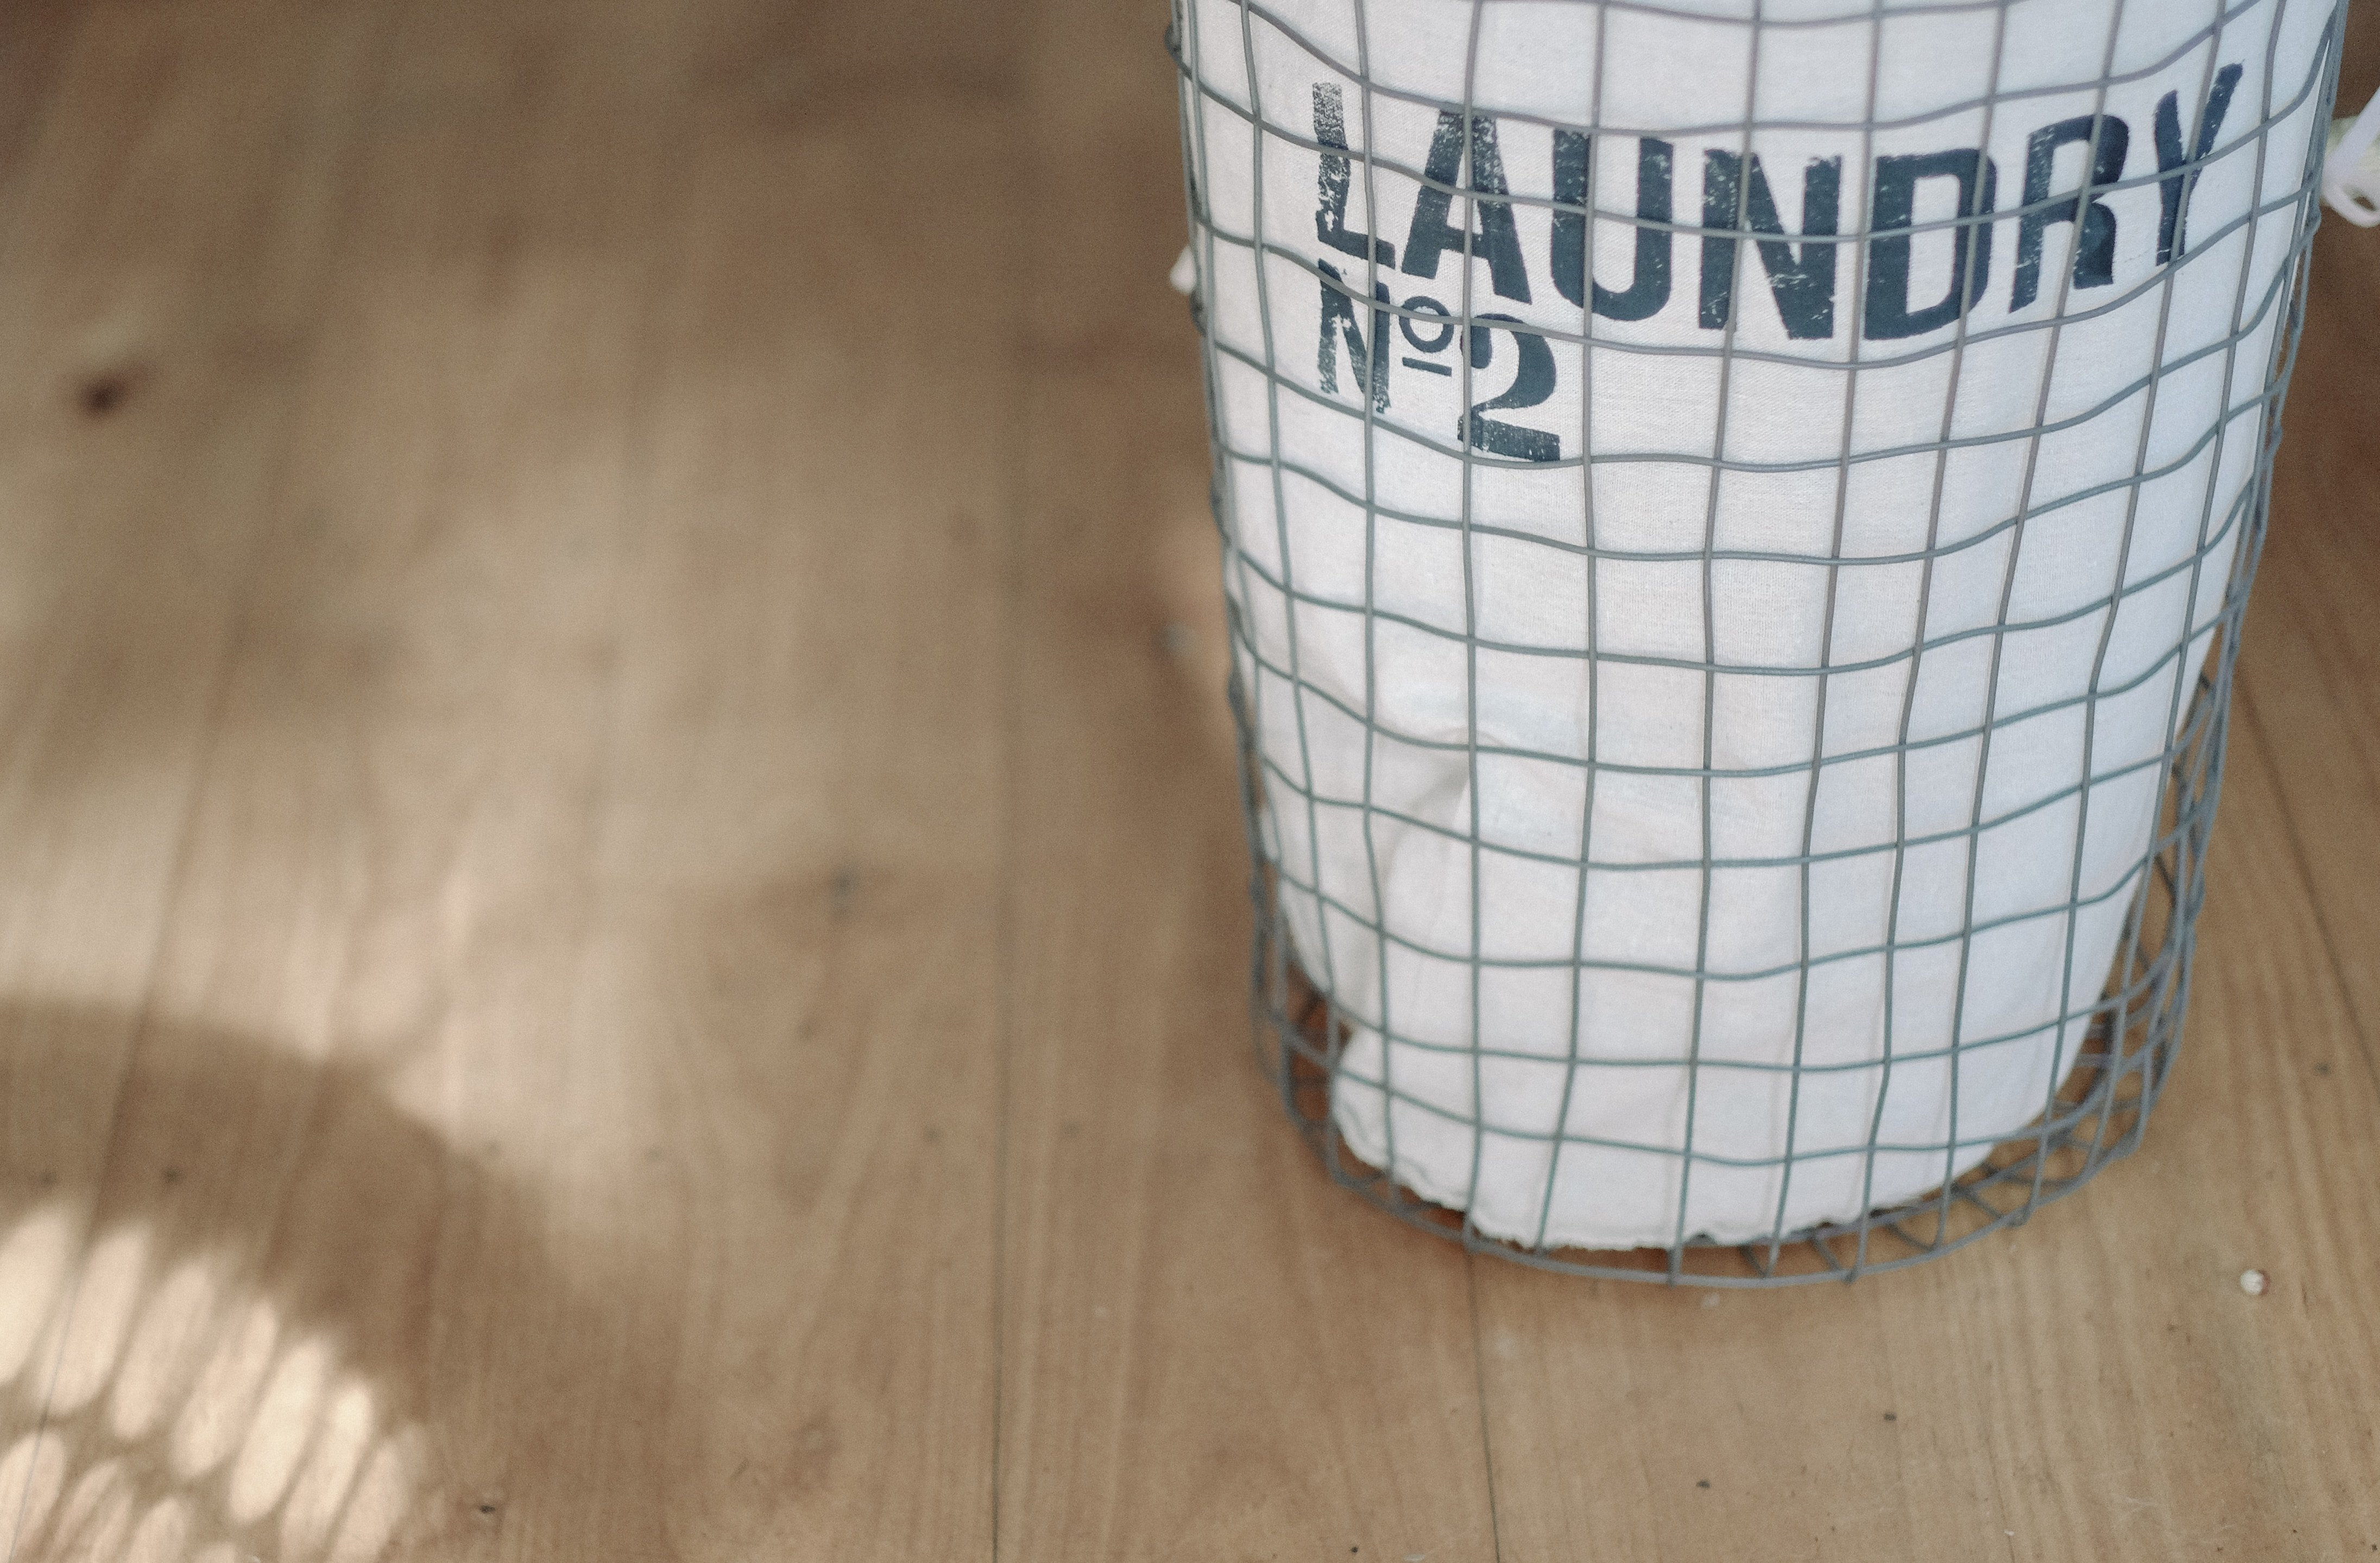 One Simple Tip to Make Laundry Easier